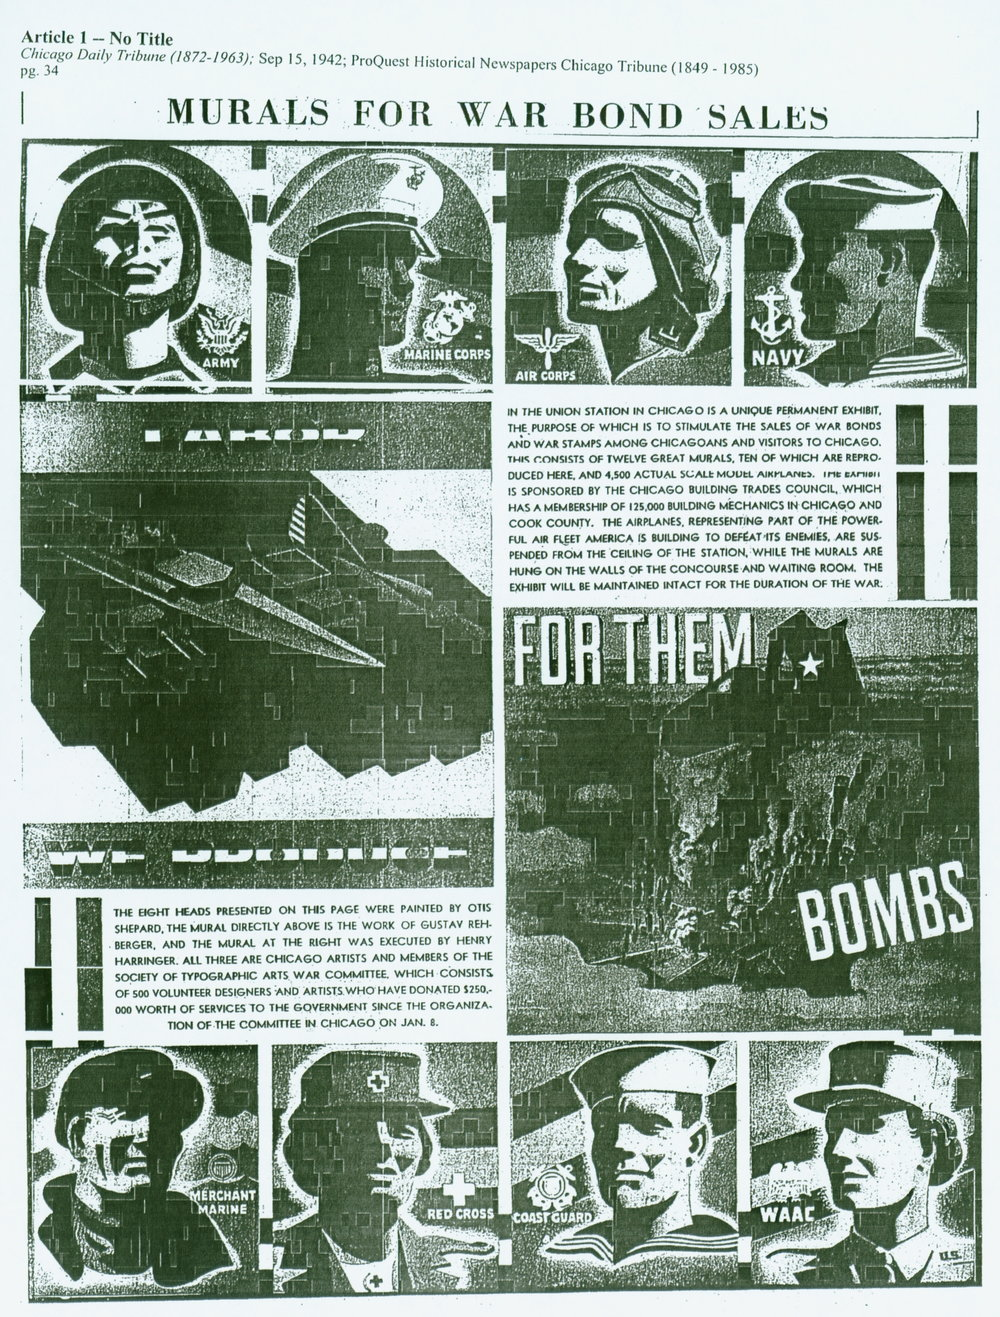 """Bonds for Us, Bombs for Them"" - Chicago Daily Tribune - September. 15, 1942 War Bond Murals, Chicago Union Station"